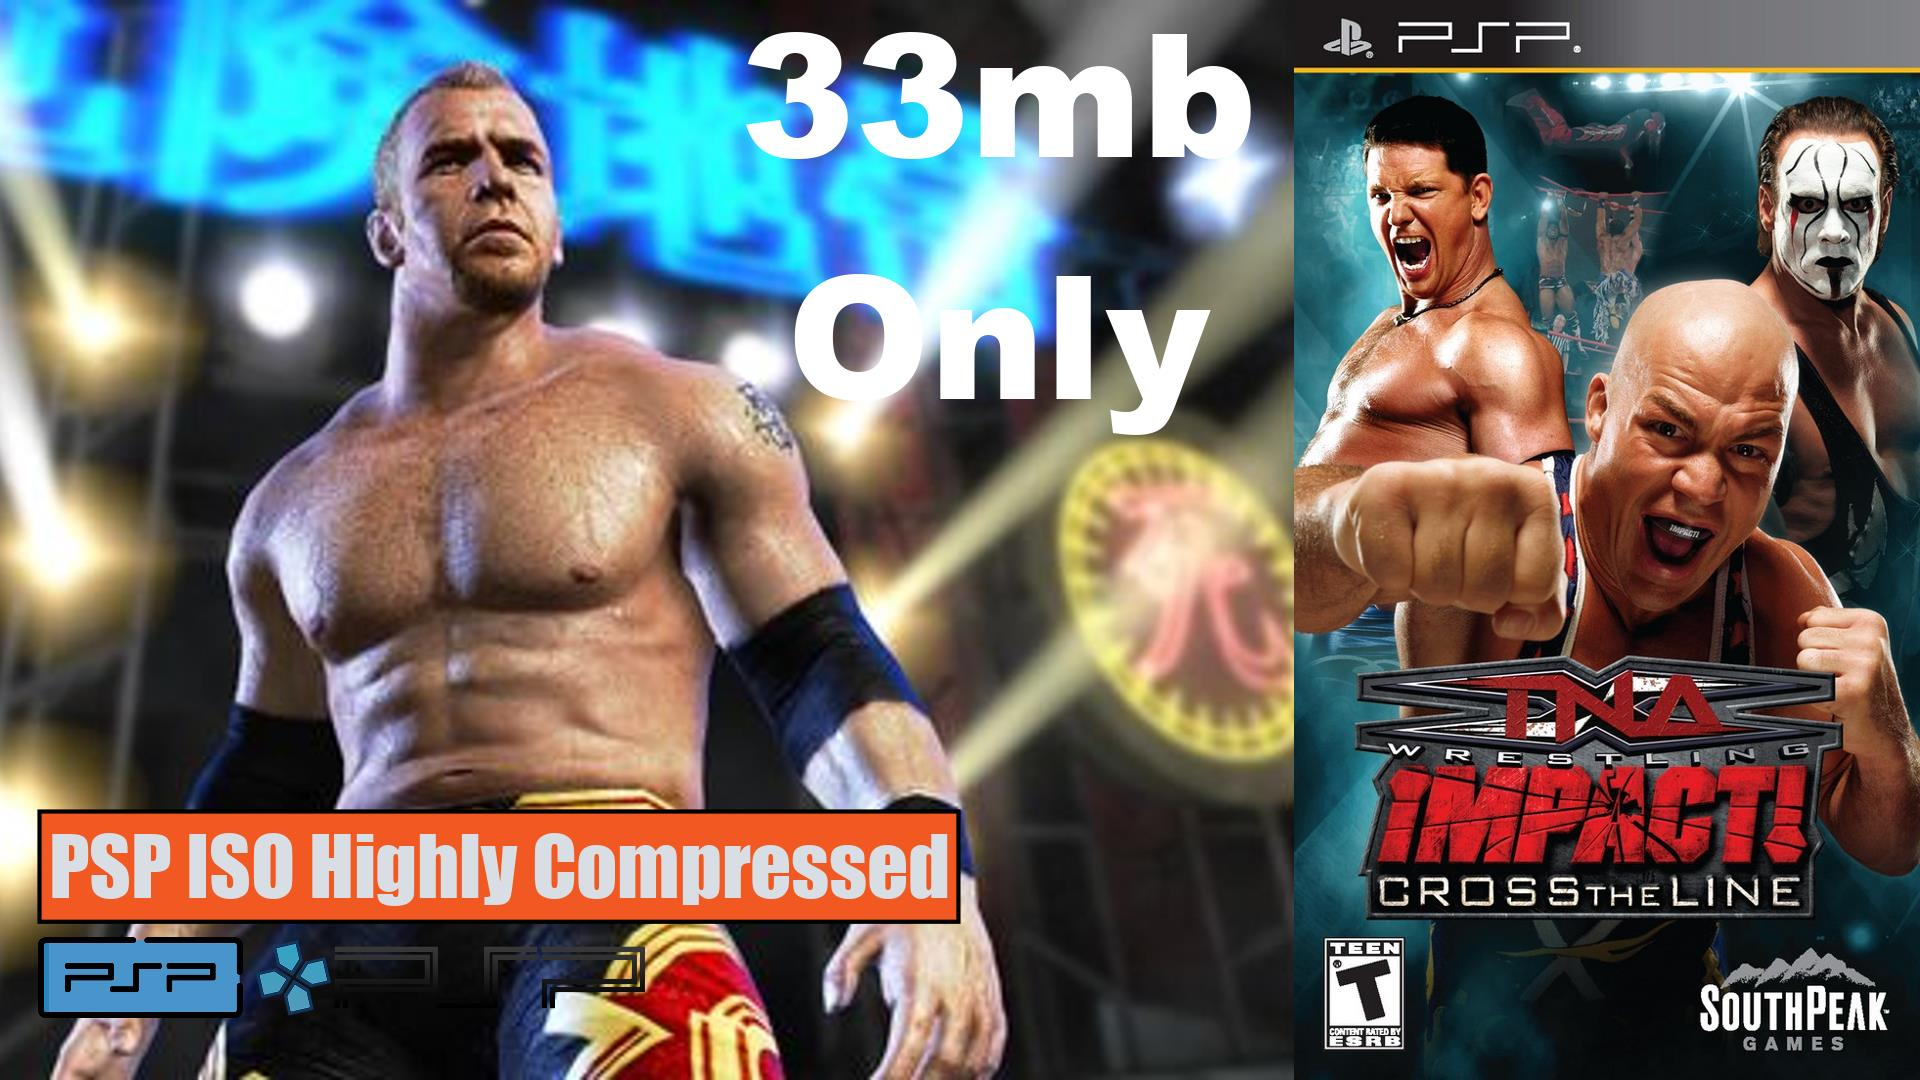 TNA Impact PSP ISO Highly Compressed